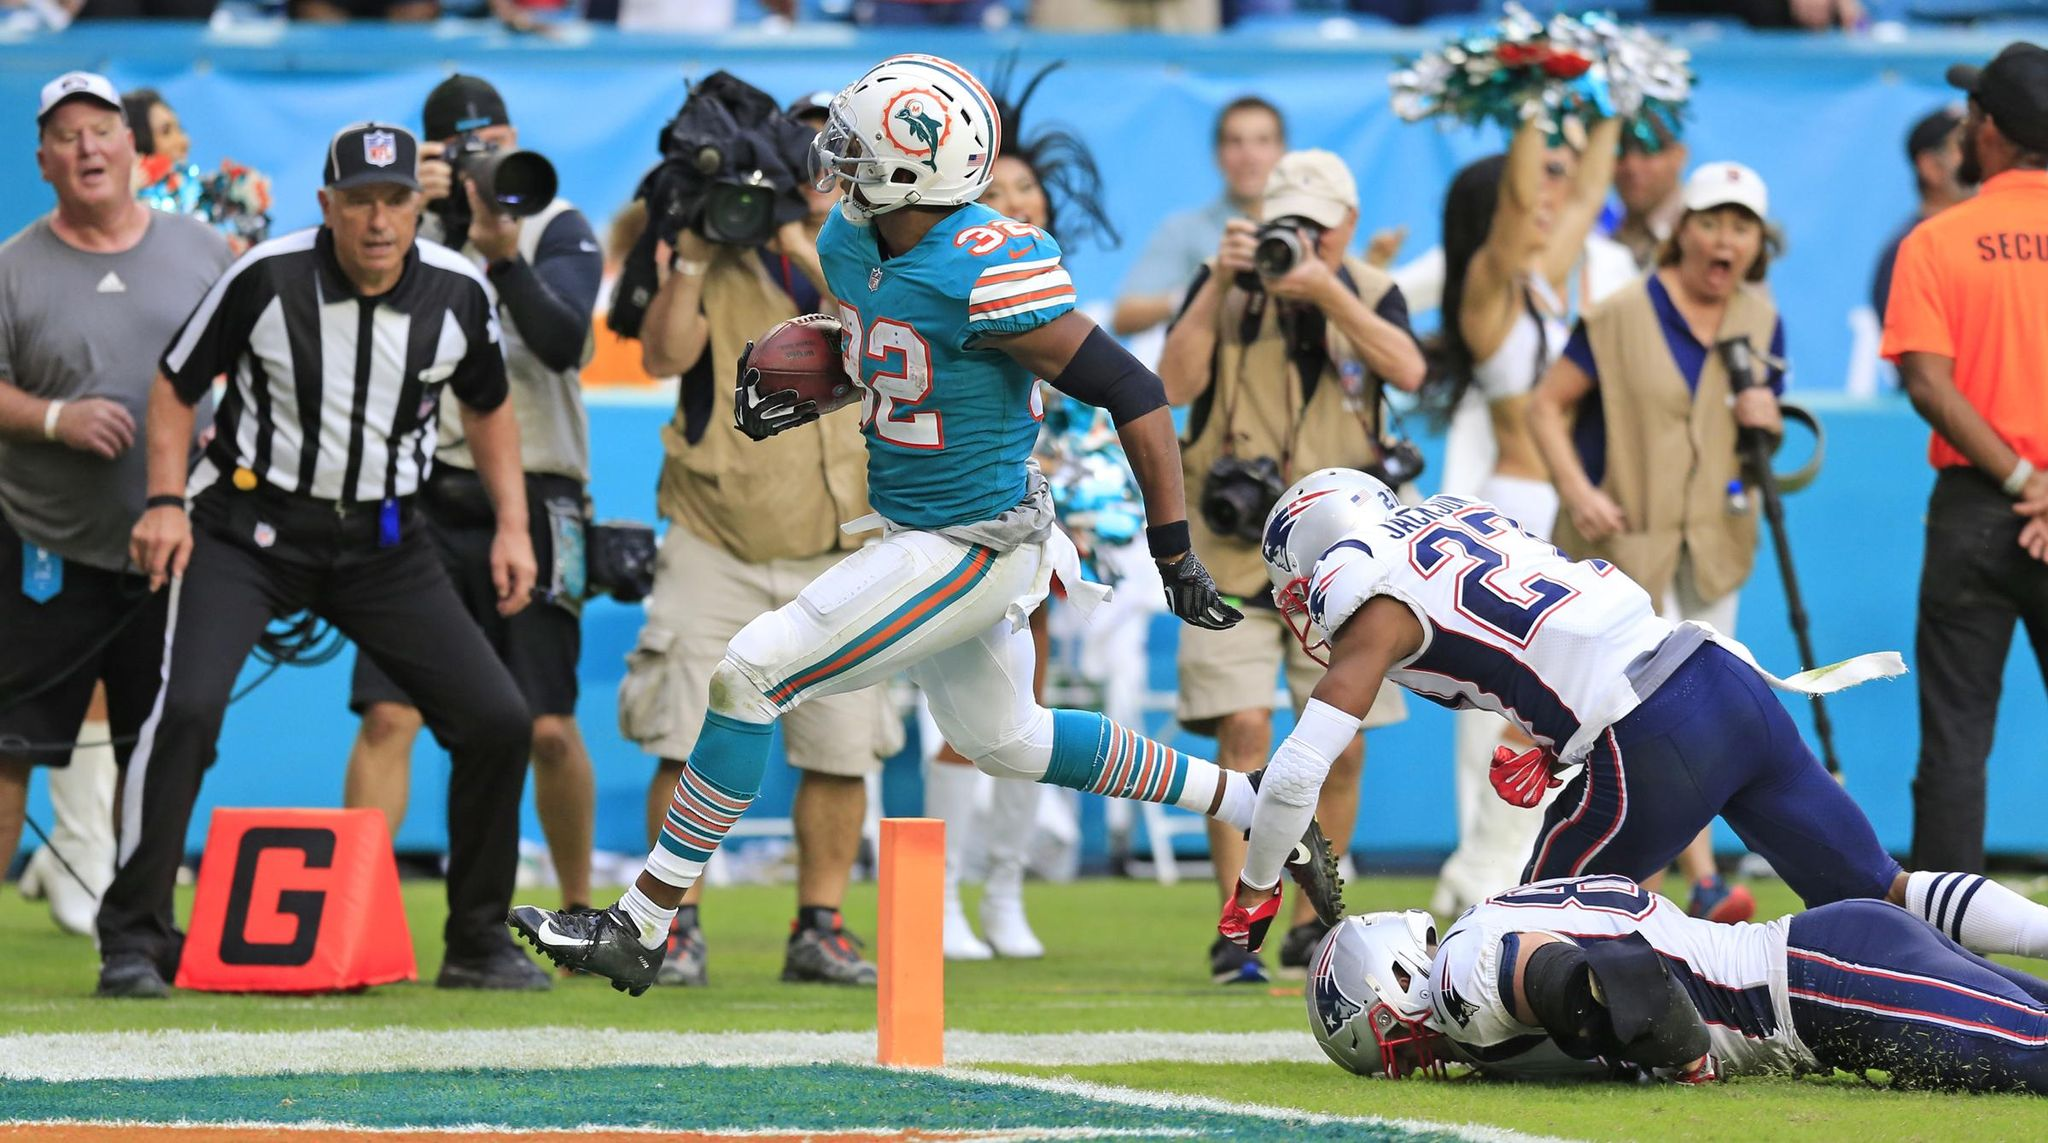 Patriots_dolphins_football_82857_s2048x1143